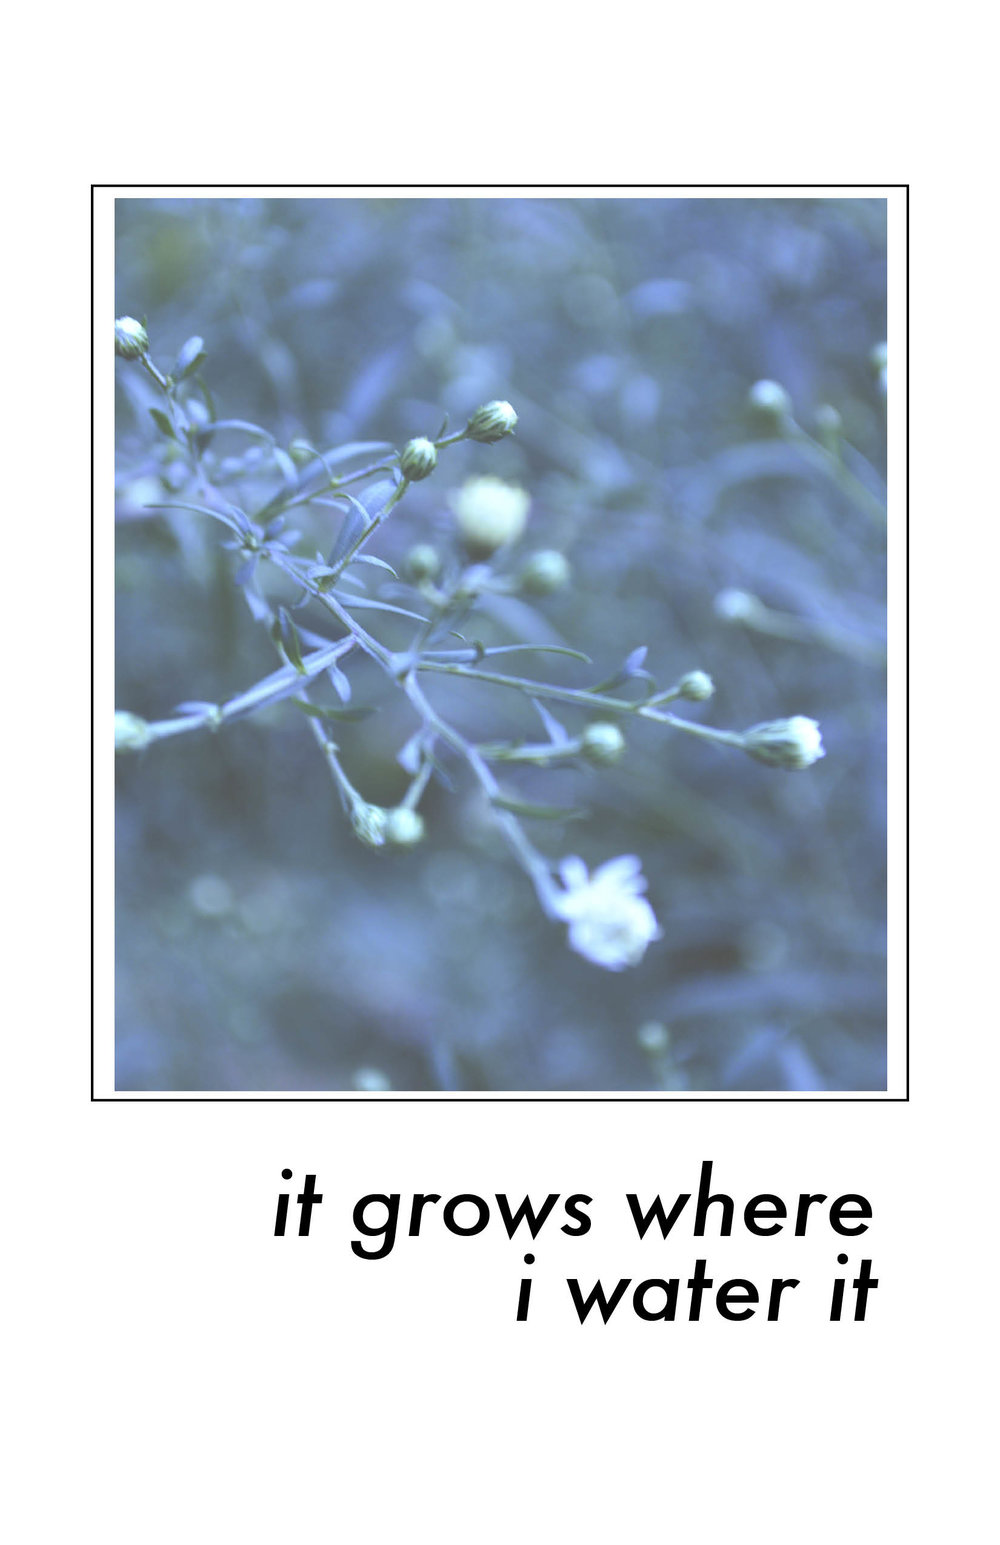 it grows where i water it - I wanted to reaffirm the idea that my focus and energy will affects the course of everything.